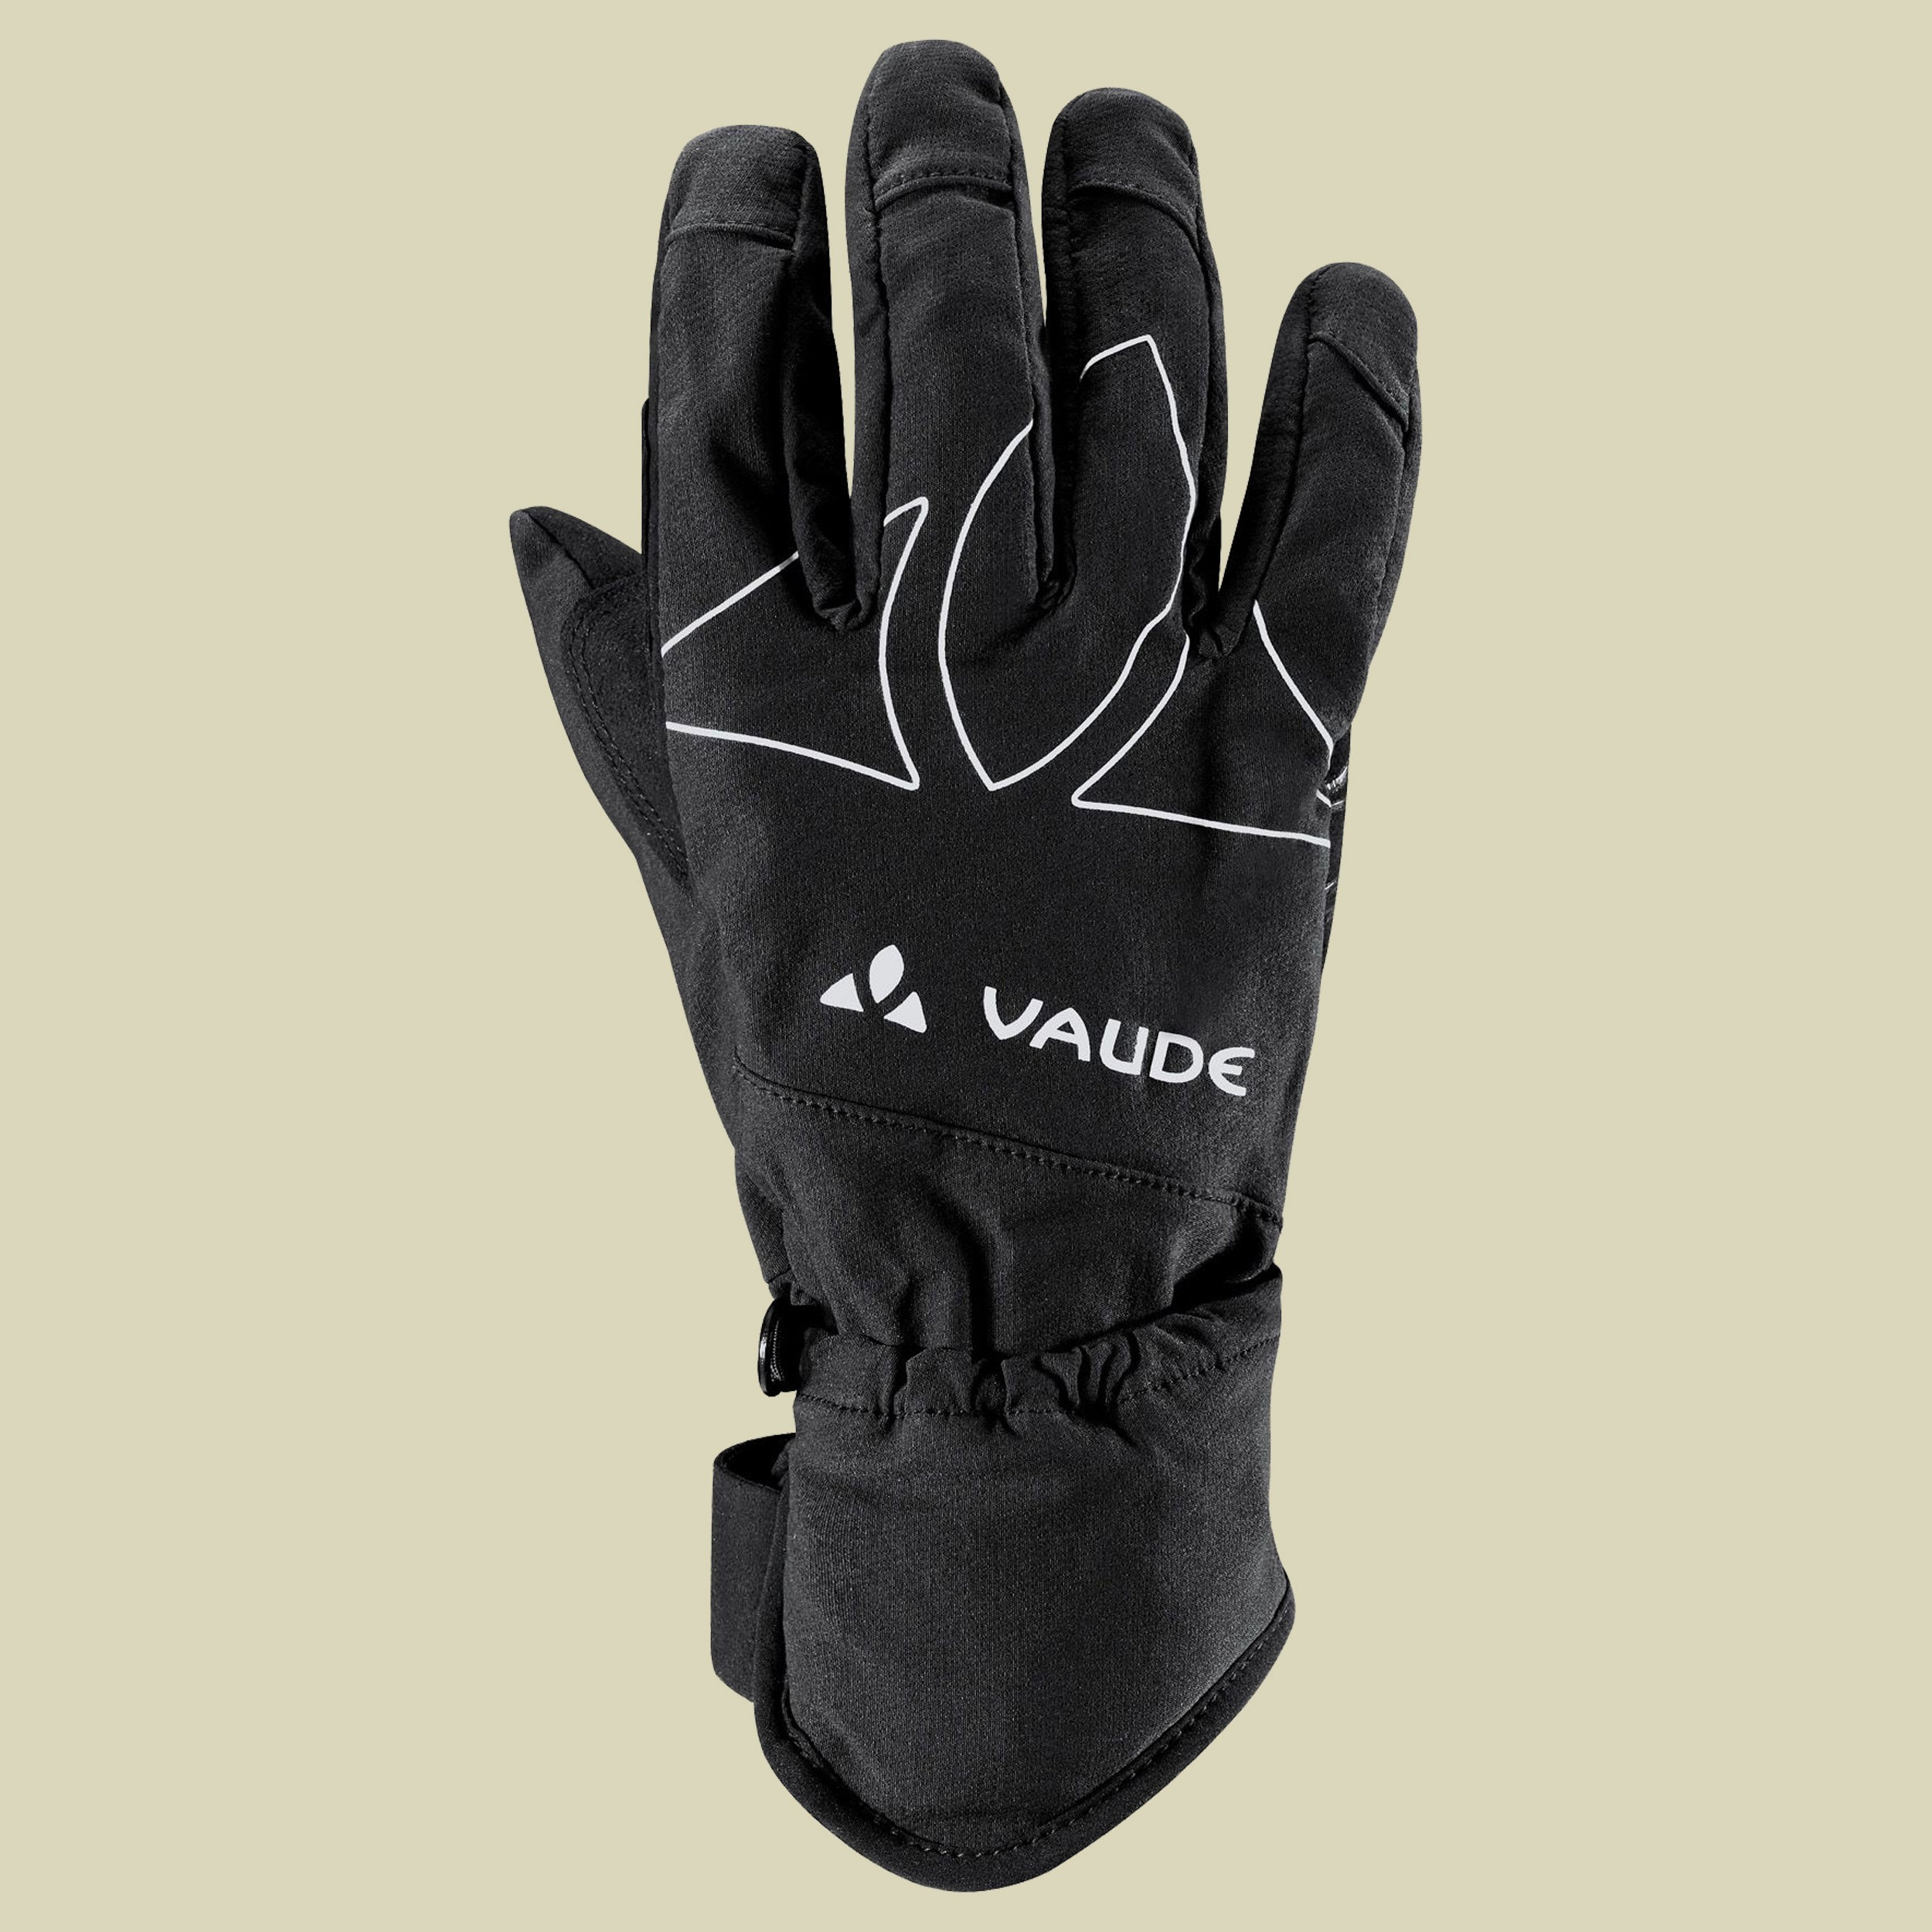 La Varella Gloves